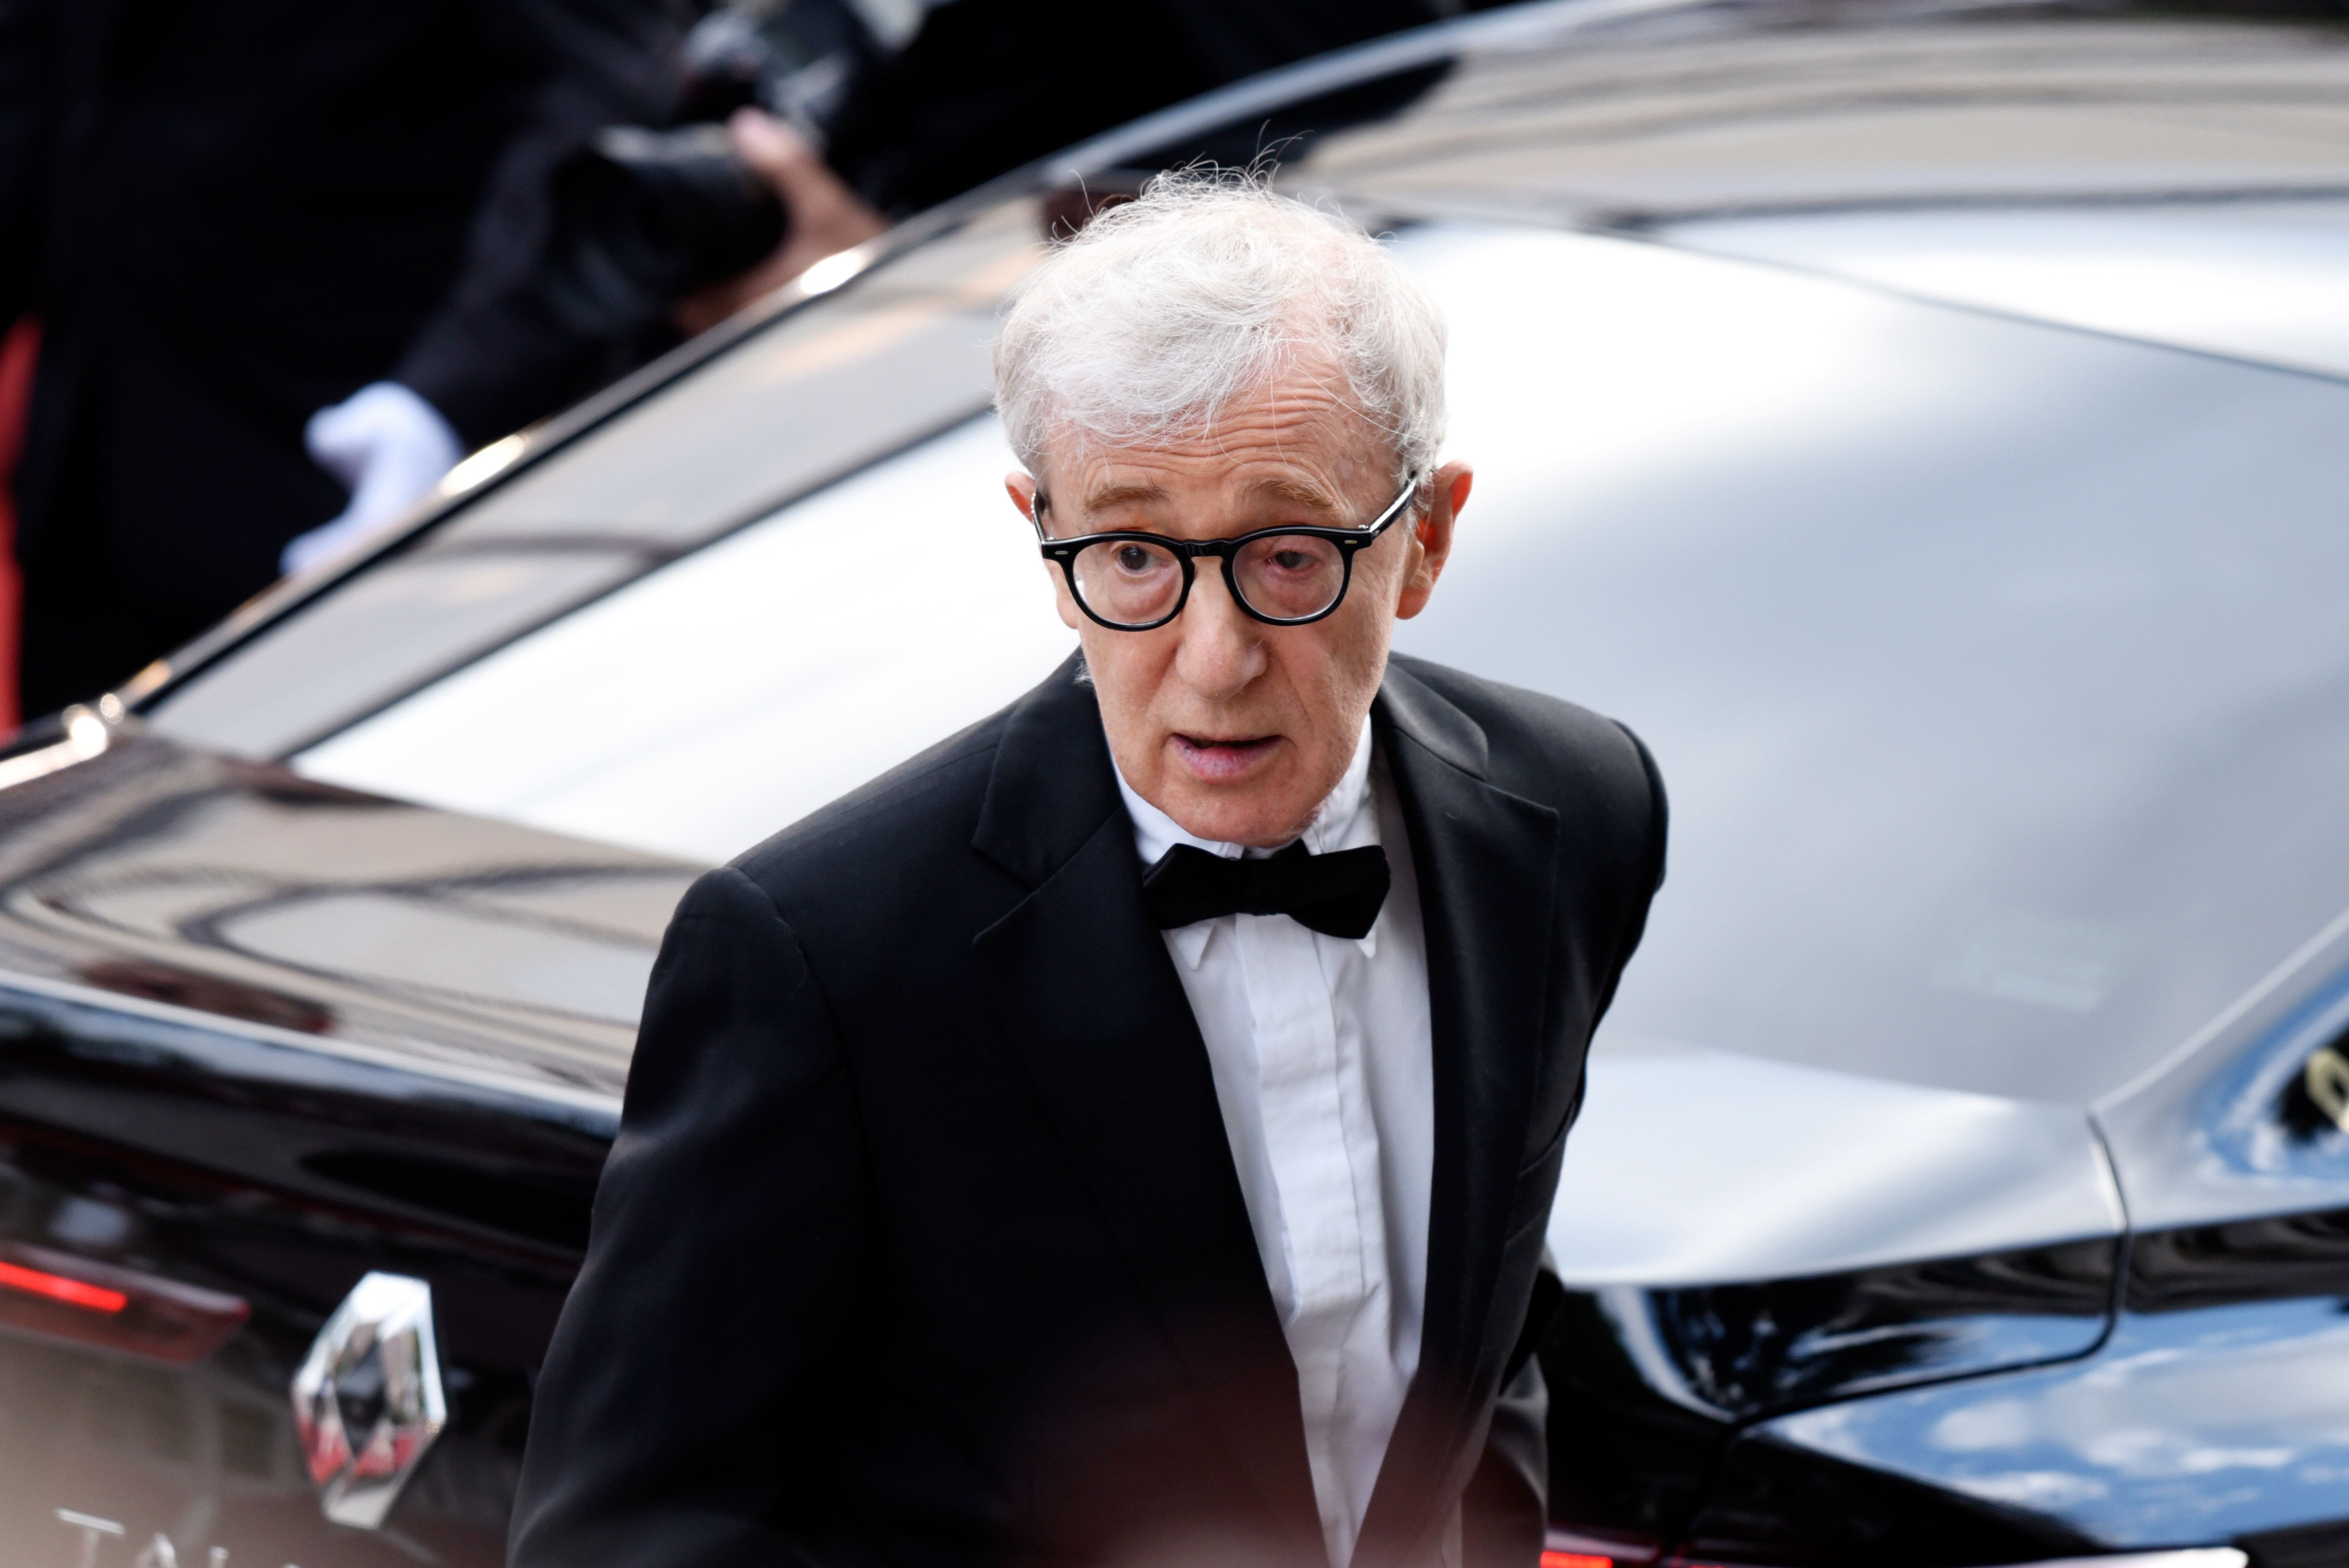 CANNES, FRANCE - MAY 11:  Director Woody Allen attends the 'Cafe Society' premiere and the Opening Night Gala during the 69th annual Cannes Film Festival at the Palais des Festivals on May 11, 2016 in Cannes, France.  (Photo by Clemens Bilan/Getty Images)